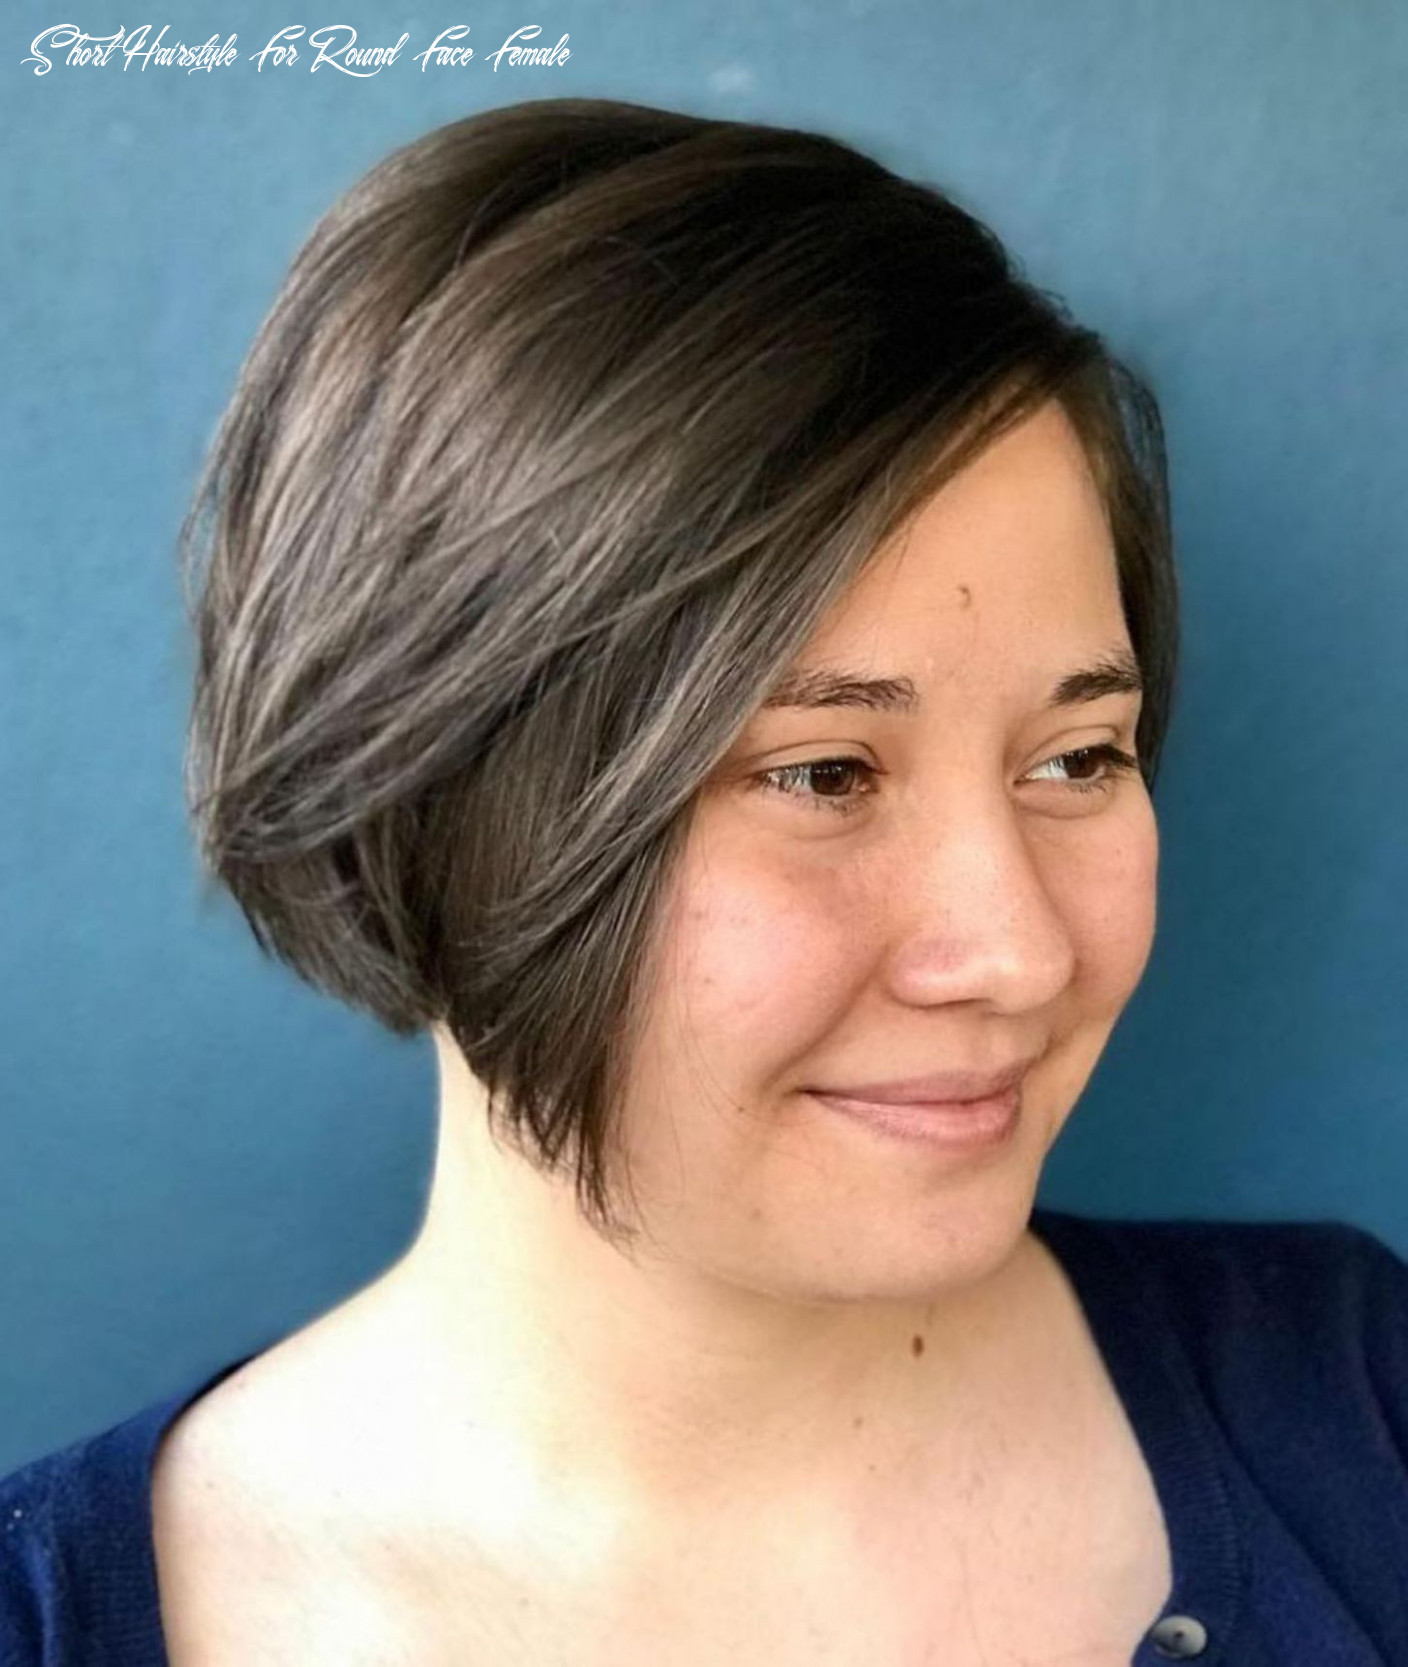 Short hairstyles for round faces awesome fashion short haircuts